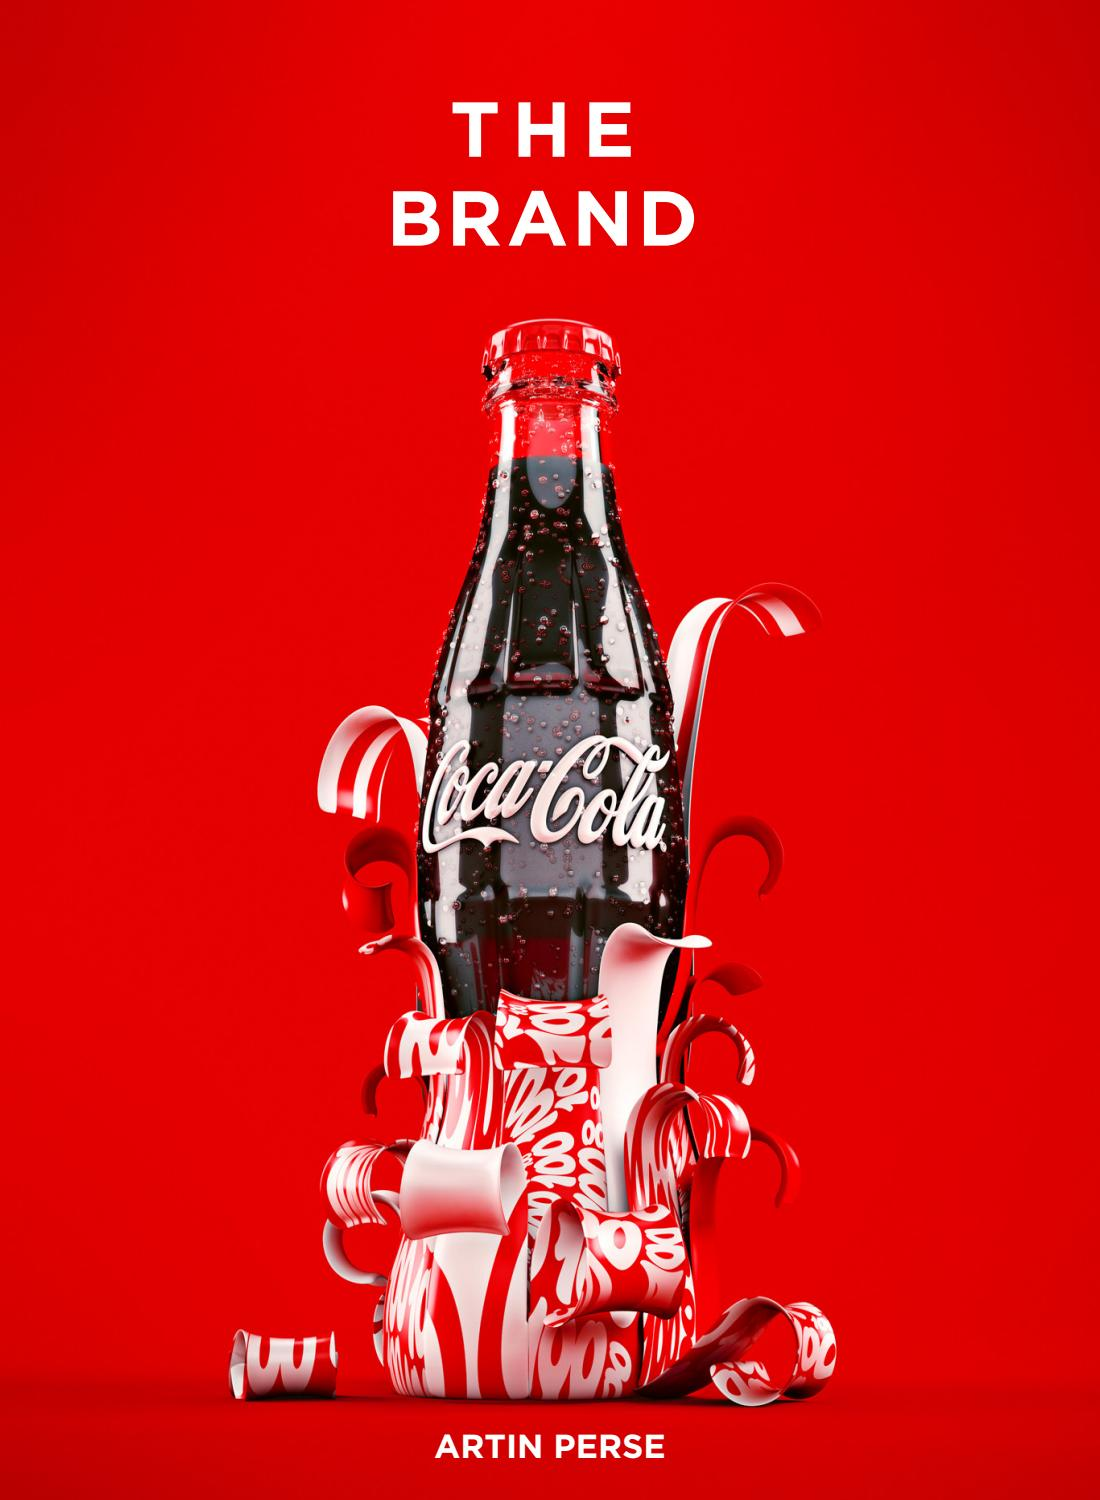 coca cola economic position paper The coca-cola company the coca-cola company (nyse: ko) is the largest beverage company in the world, offering more than 500 brands in over 200 countries 19 of our brands, valued at $ 21 billion, are available in reduced or low sugar or sugar free versions to make it easier for people around the world to control the intake of sugar.